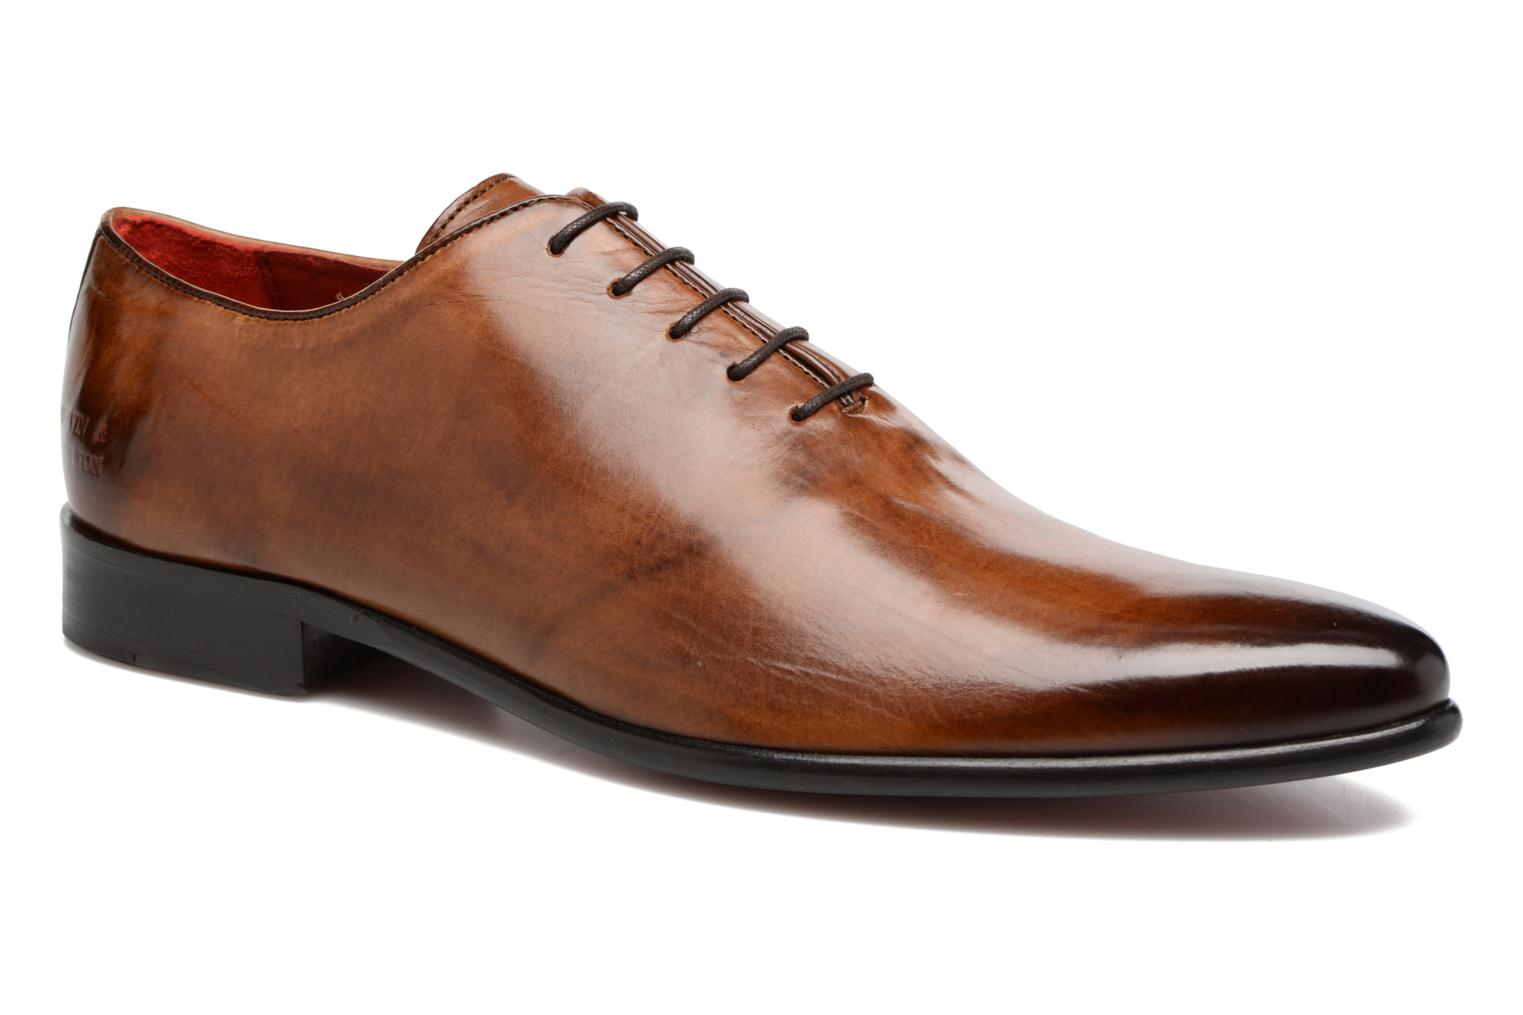 Melvin & Hamilton Toni 26 Hommes Chaussures Oxford 6zqAx